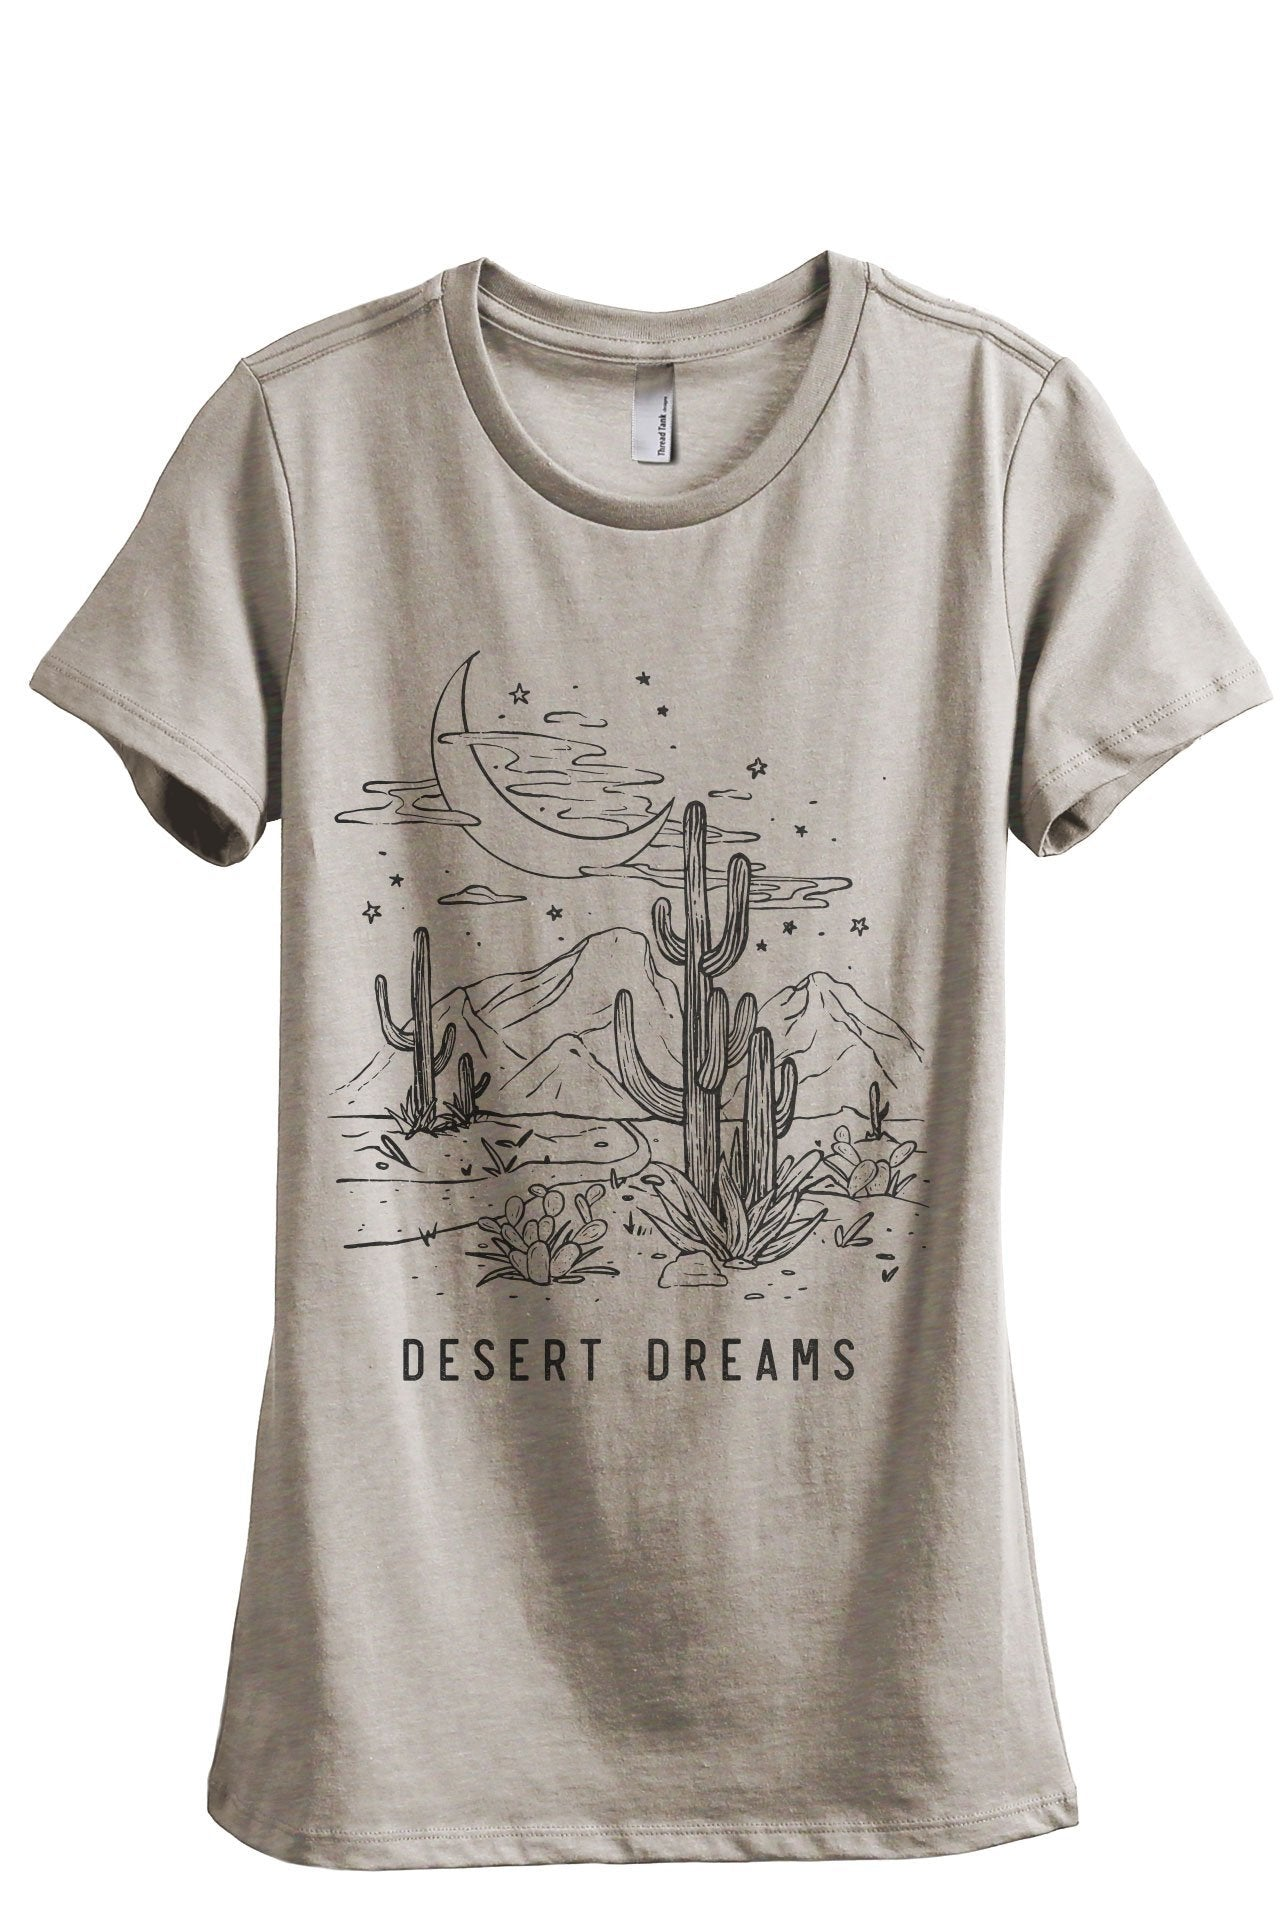 Desert Dreams Women's Relaxed Crewneck T-Shirt Top Tee Charcoal Grey